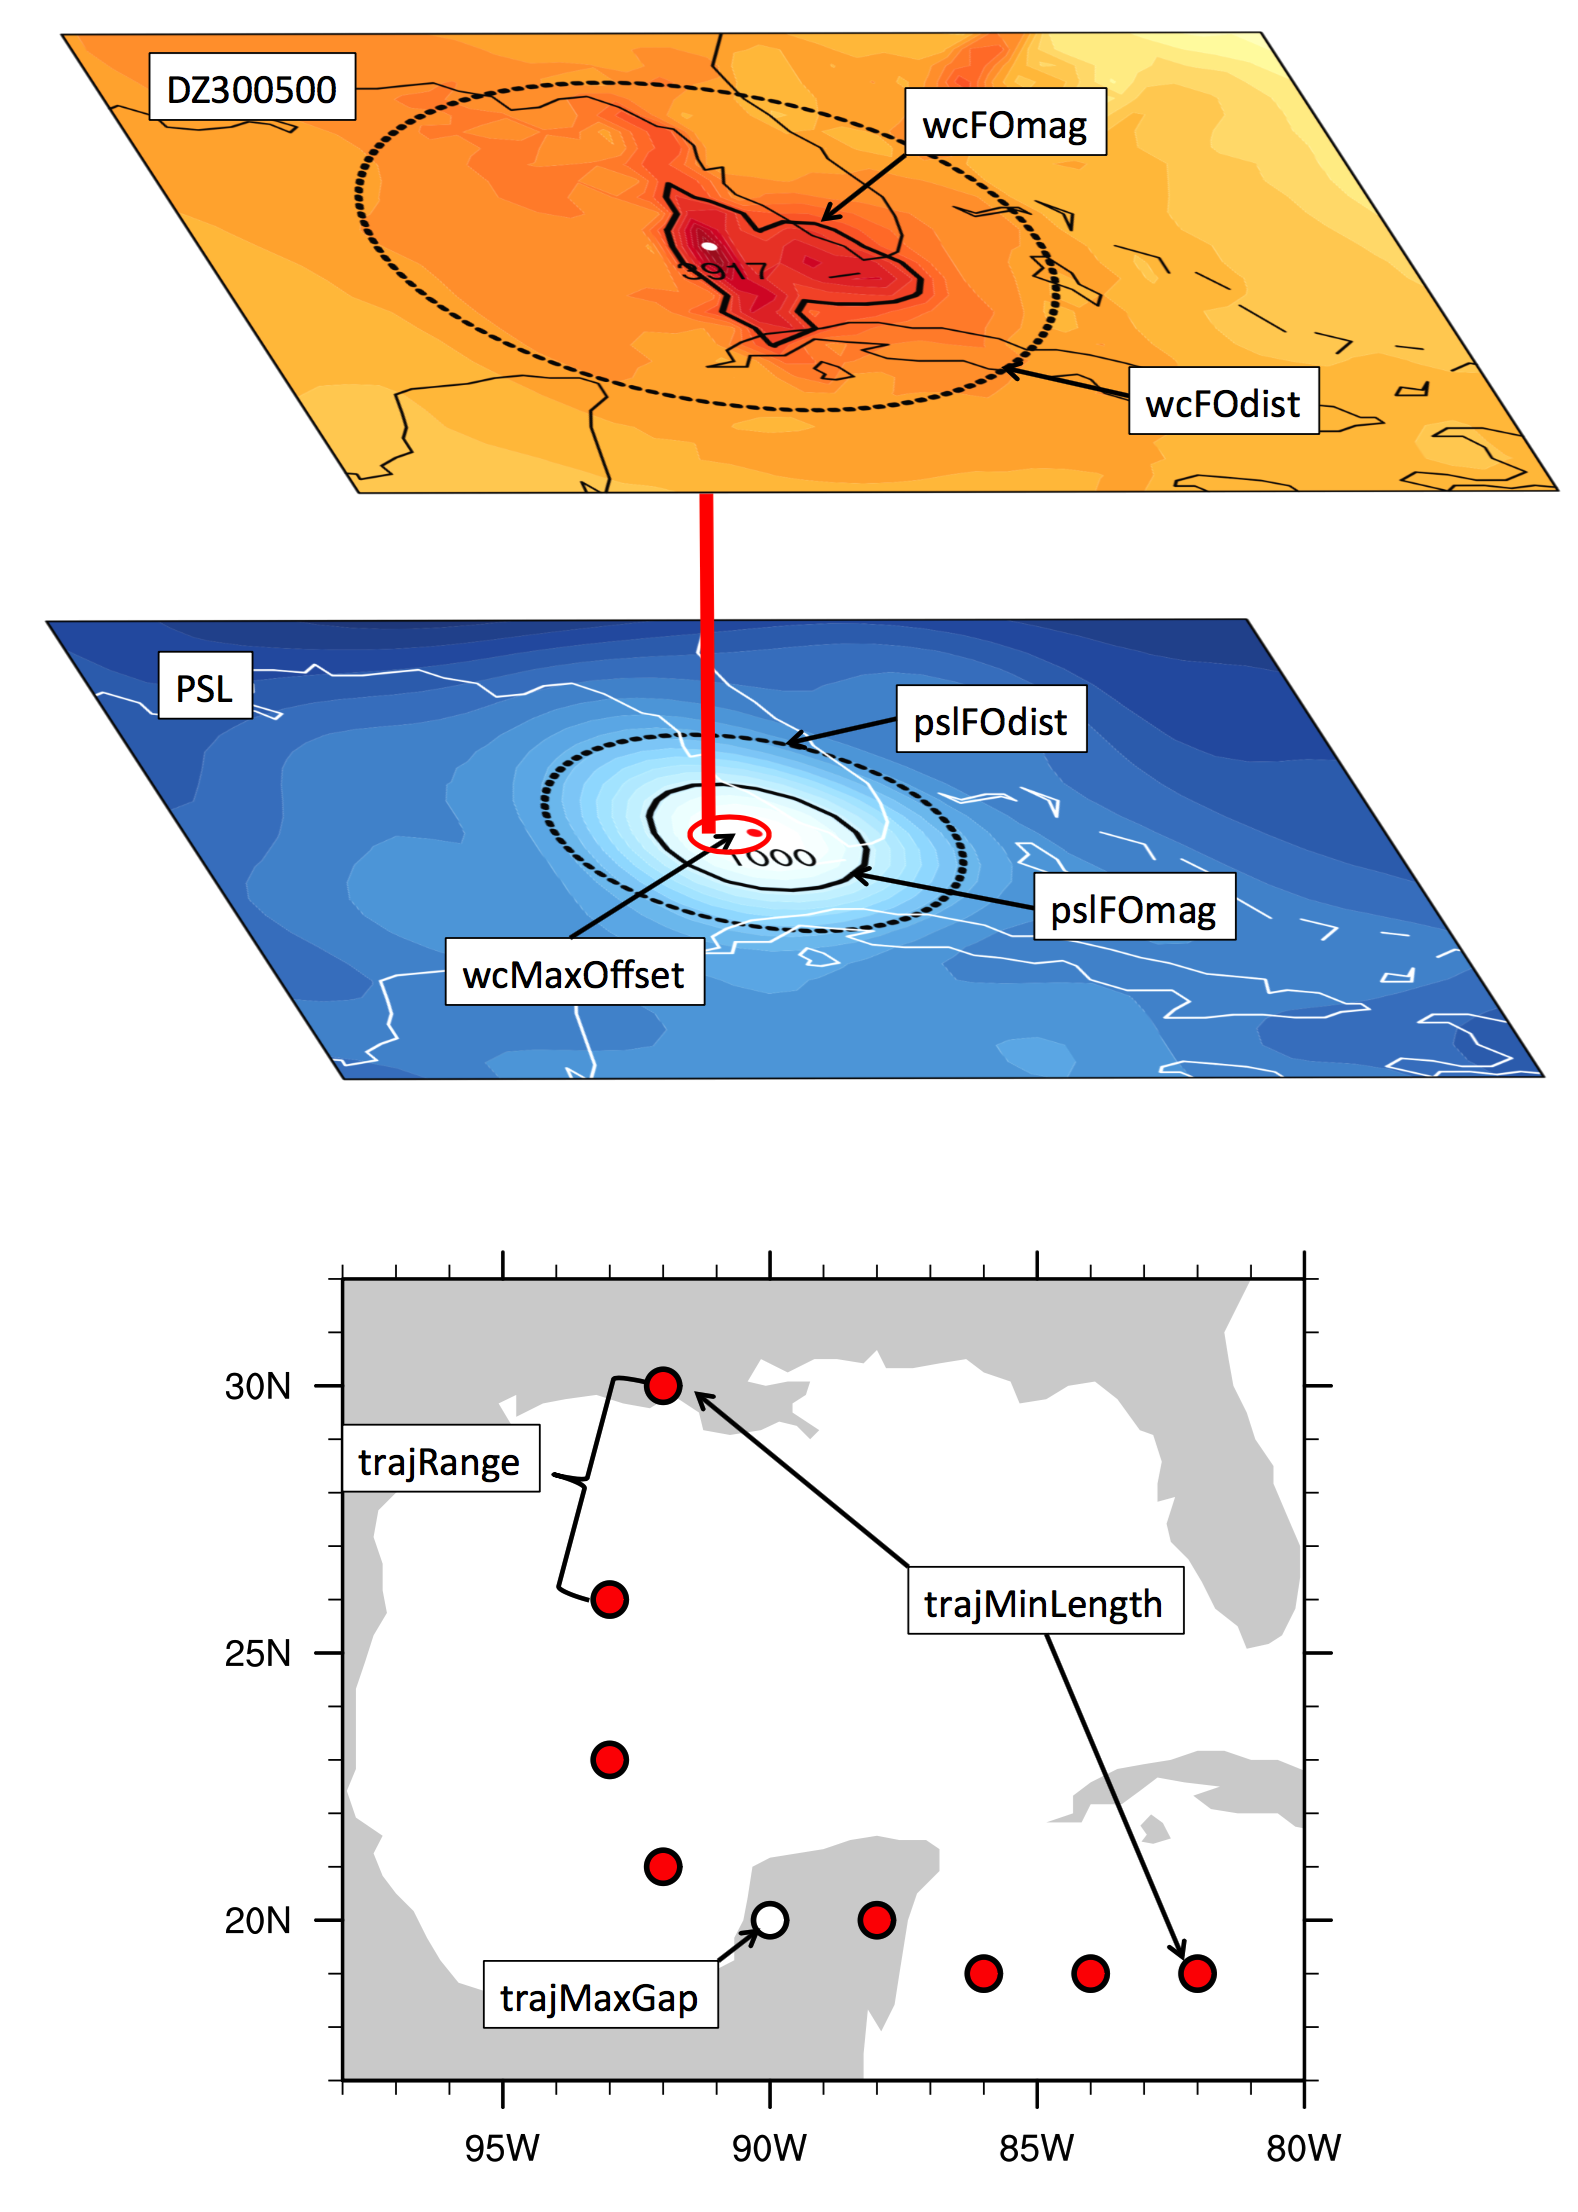 Schematic of objective detection algorithm for finding tropical cyclones in 3-dimensional climate data